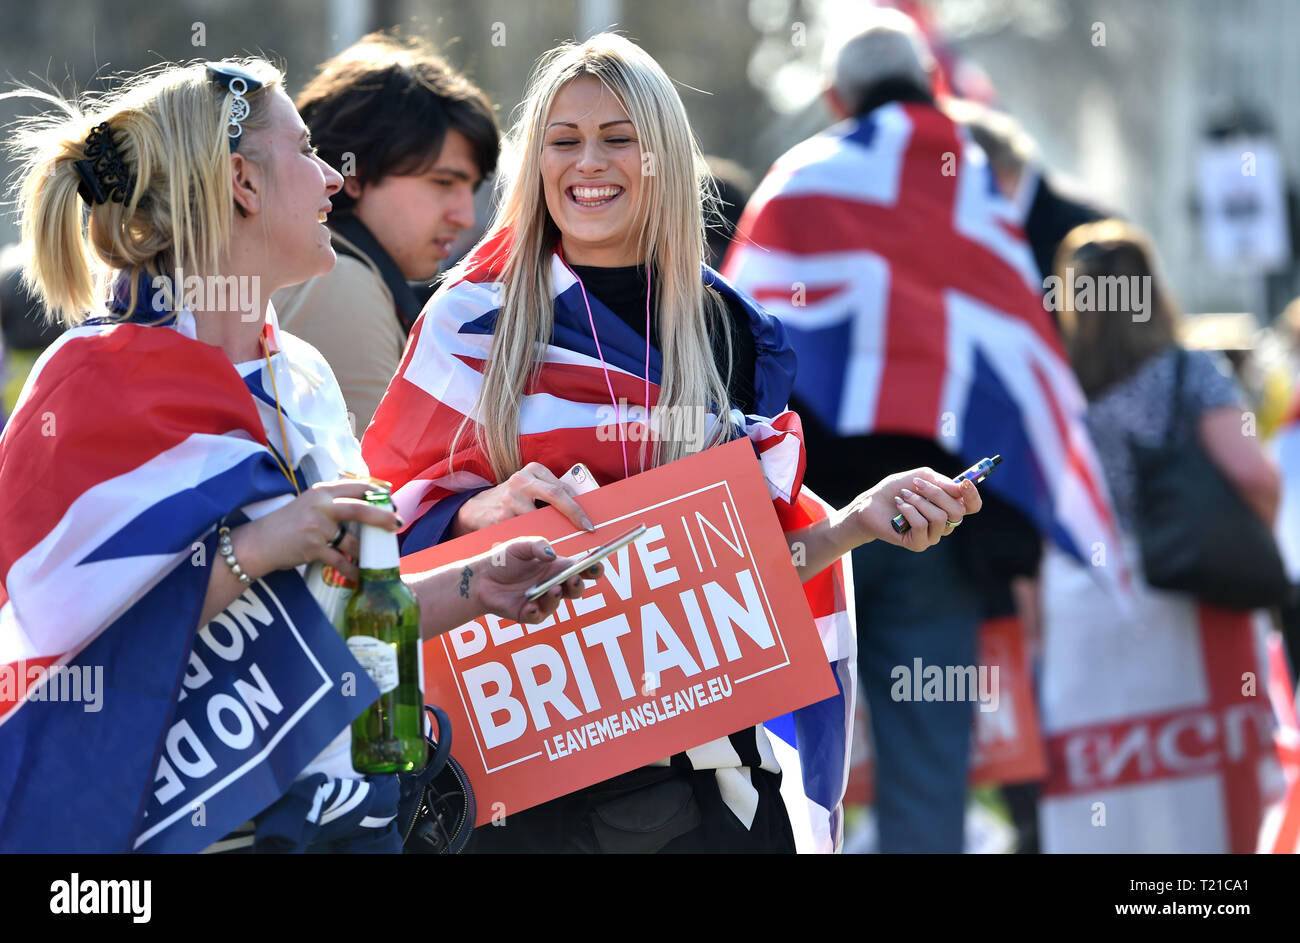 London, UK. 29th Mar, 2019. Thousands of Pro Brexit supporters join the Brexiteers Rally in Parliament Square London today as they show their anger at not leaving the EU today causing traffic chaos in the city . MP's are sitting today to debate leaving the European Parliament on the day it was originally supposed to happen Credit: Simon Dack/Alamy Live News Stock Photo